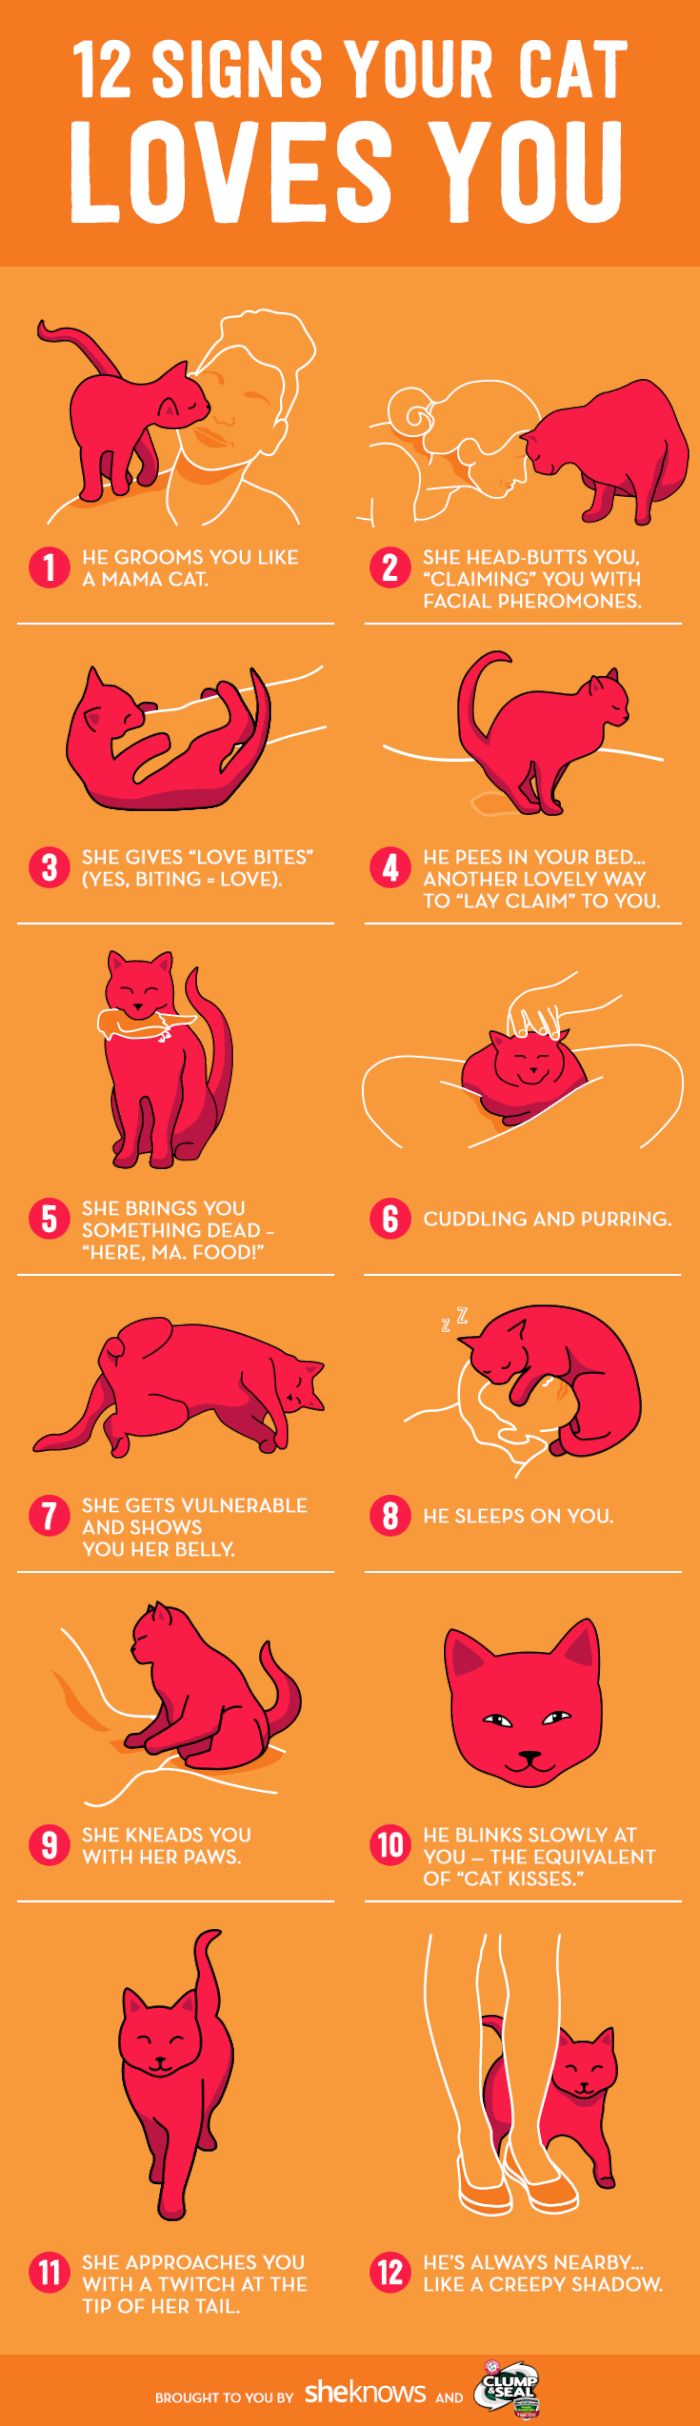 12 surprising (and sometimes creepy) signs your cat doesn't actually hate you